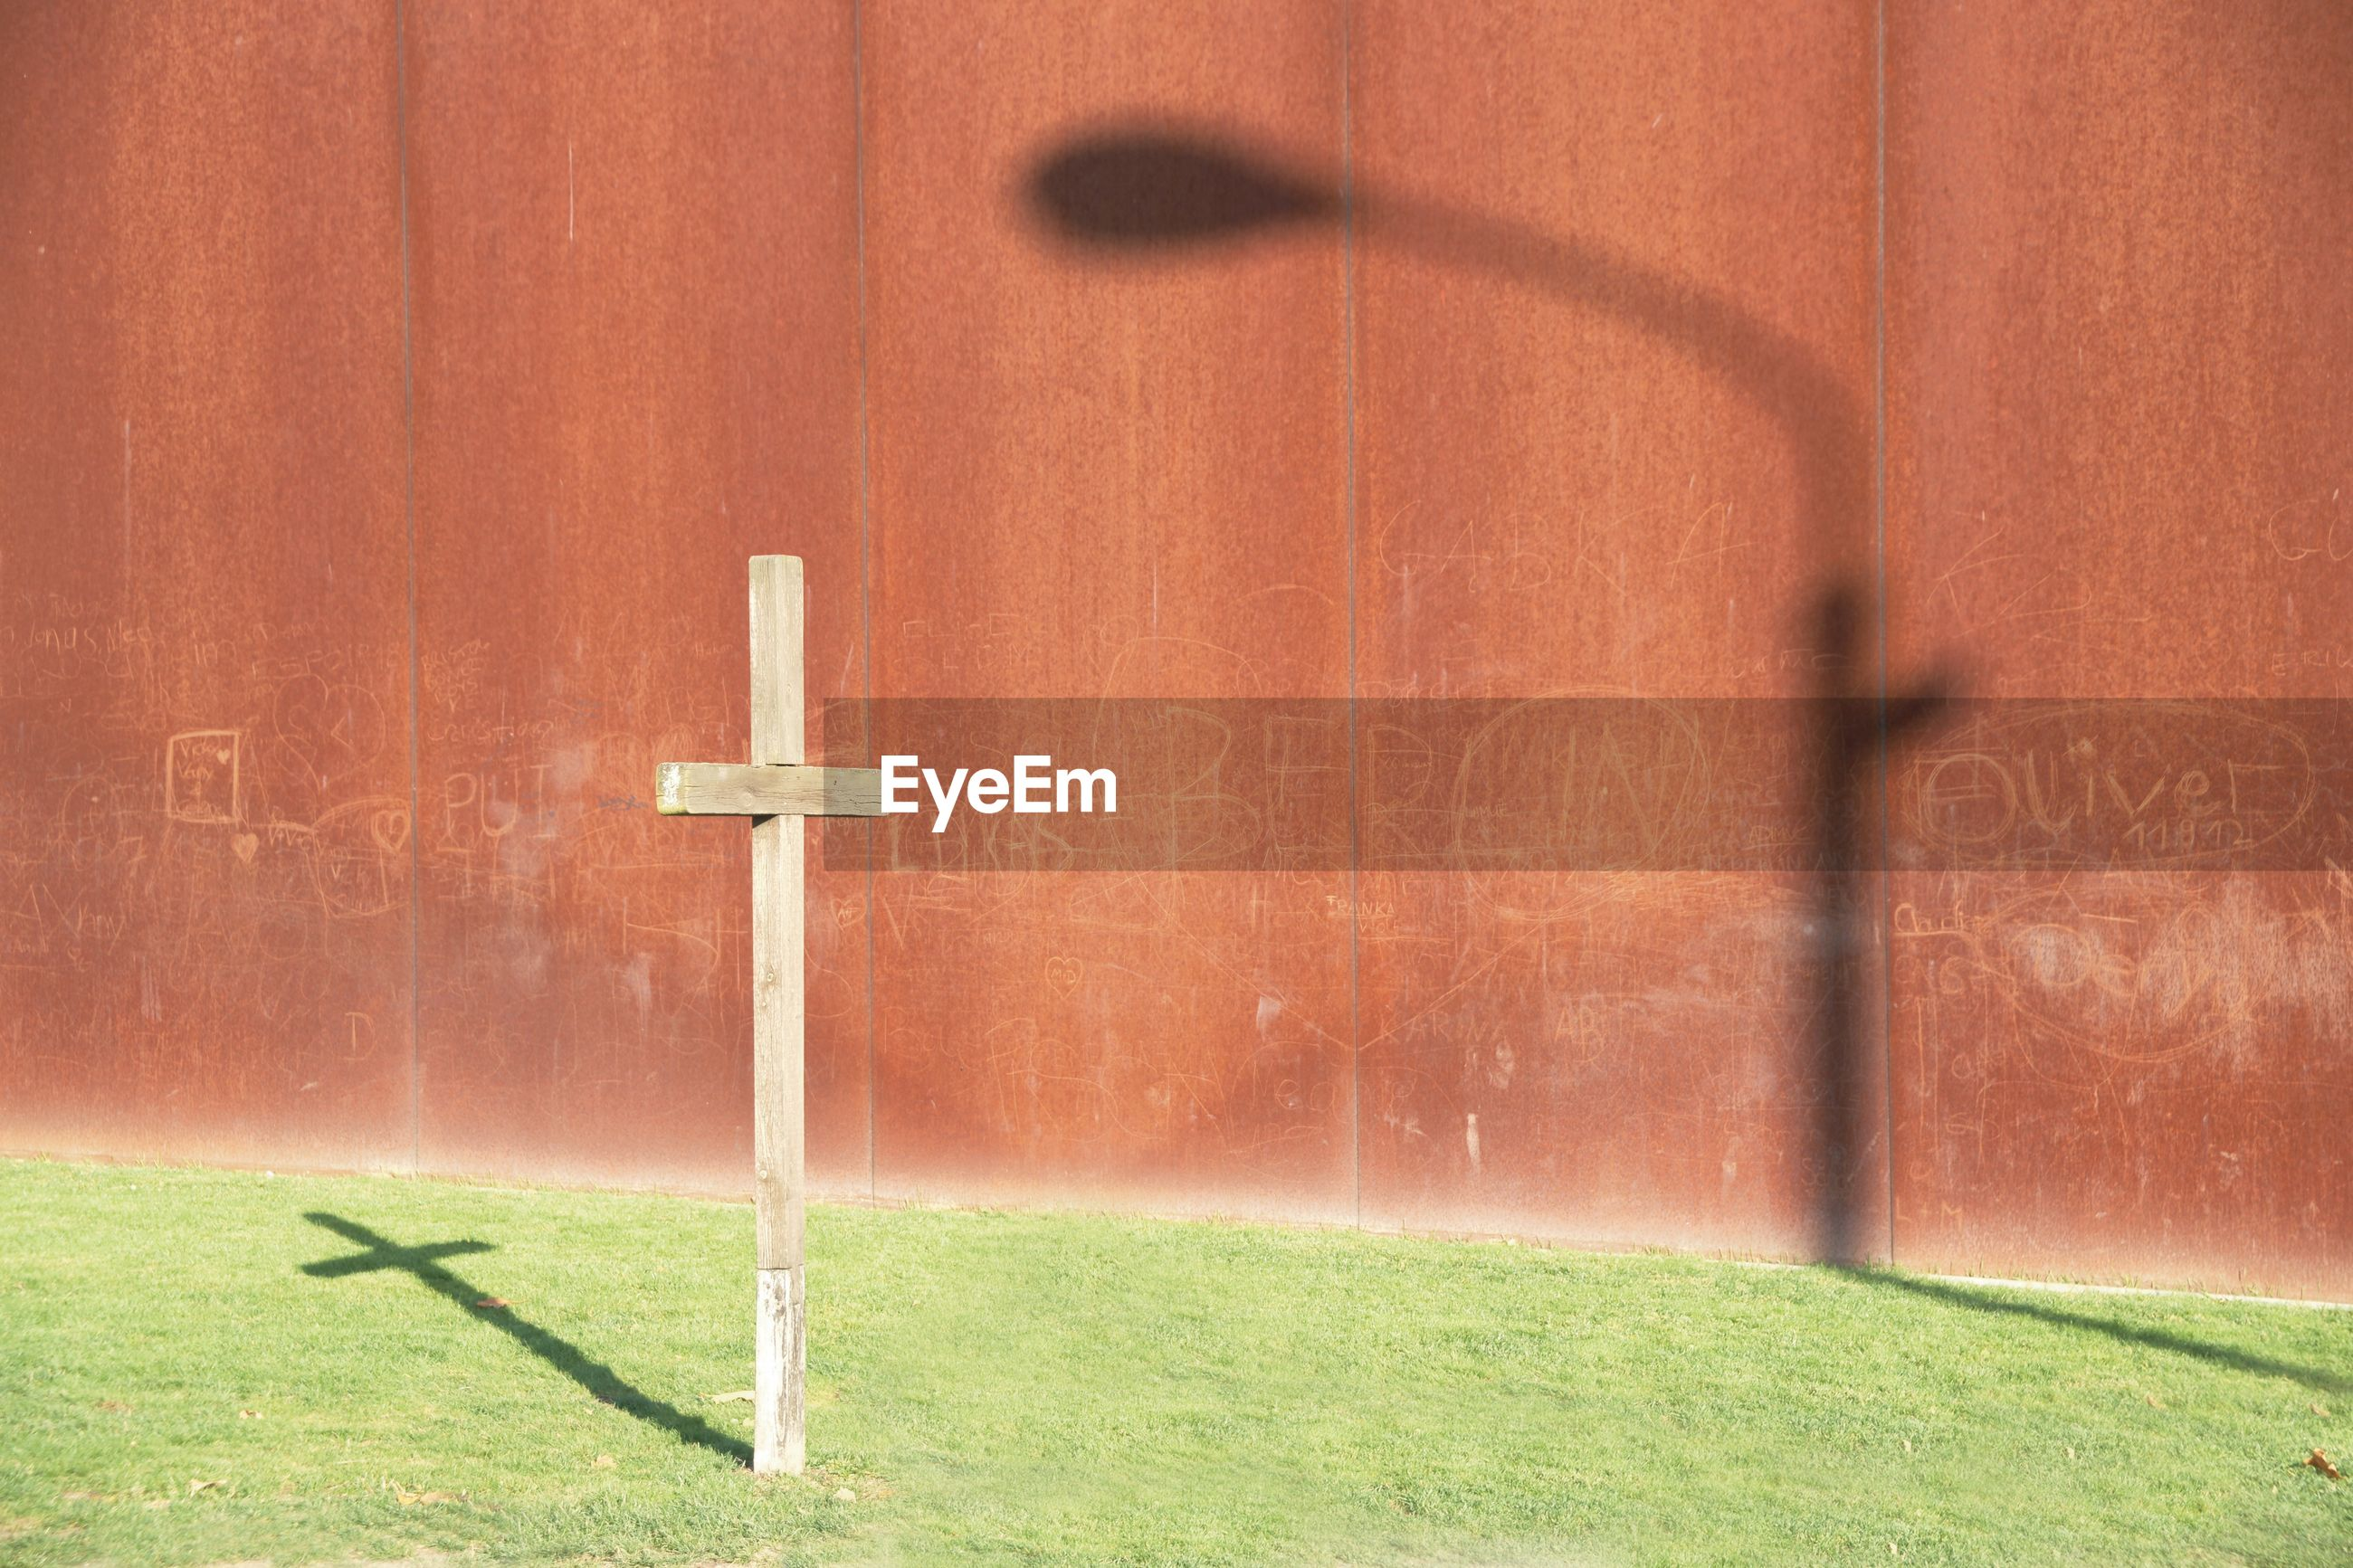 Cross with shadow of street light on brown wall